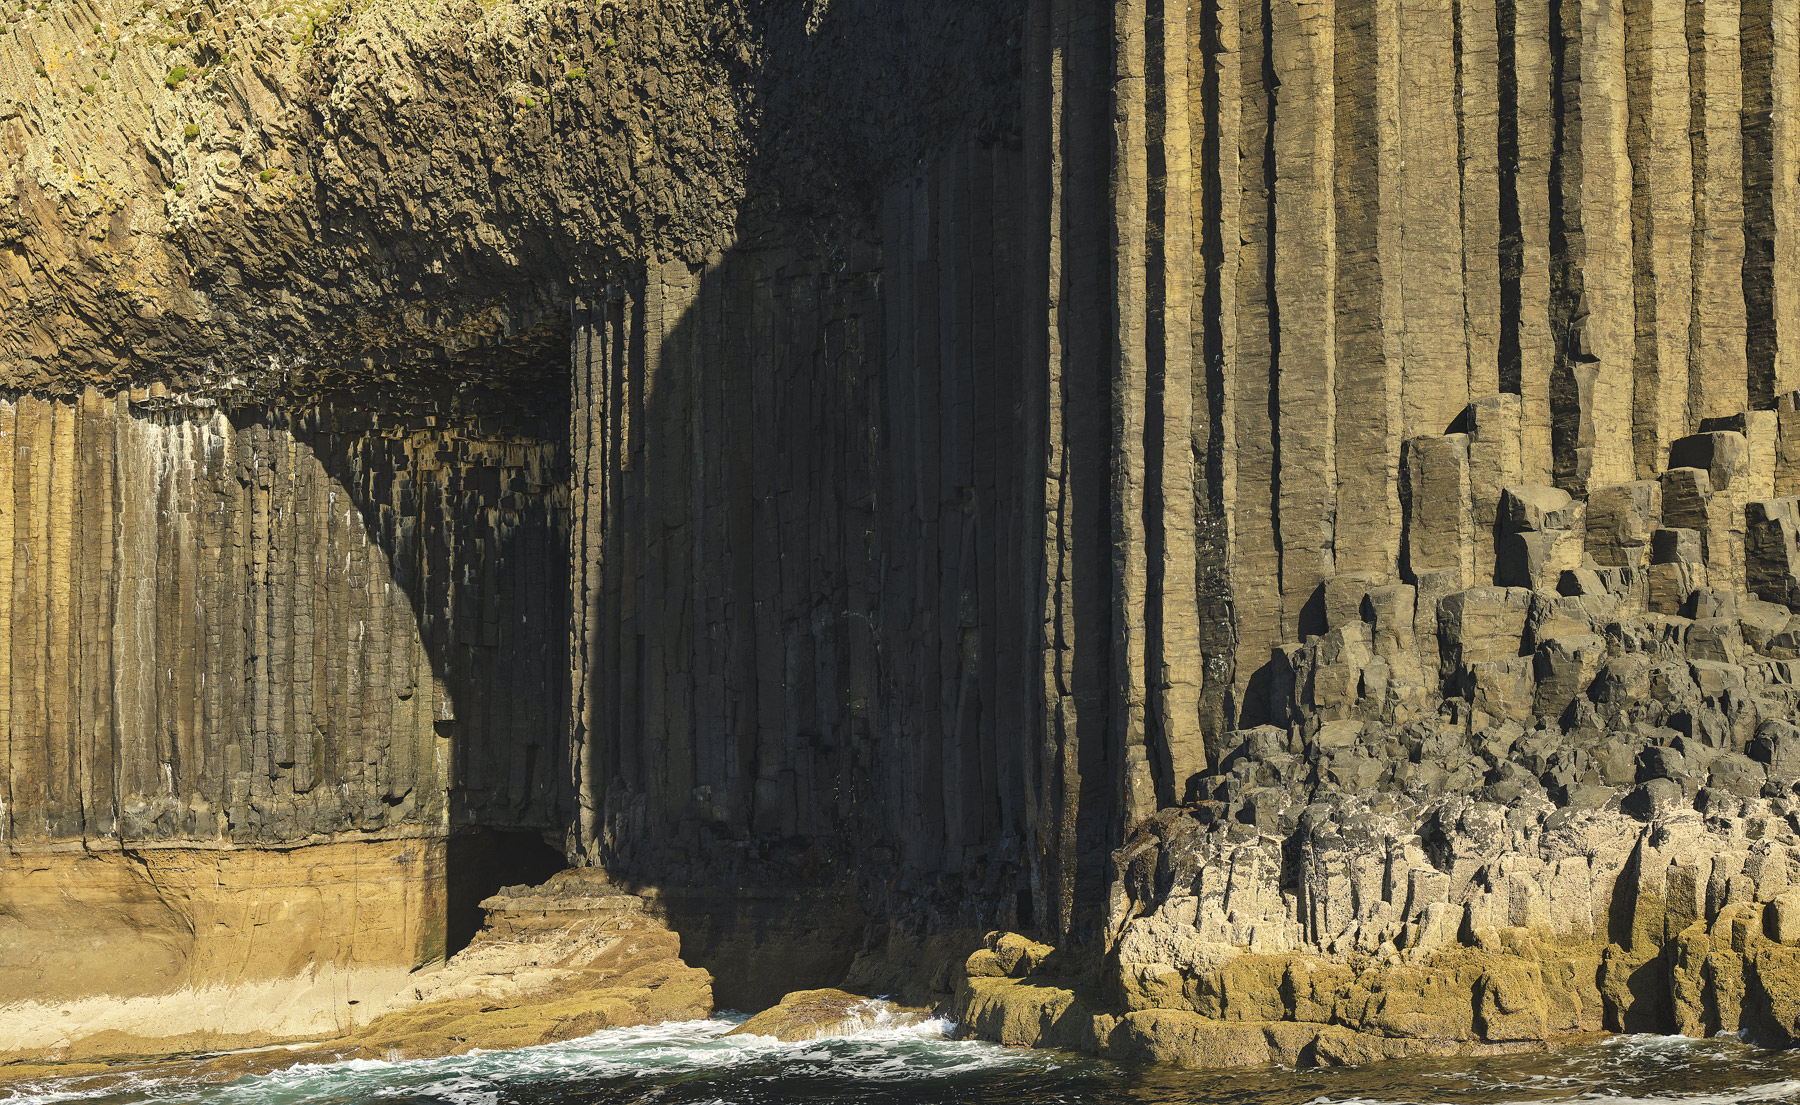 This was my first ever visit to Staffa one I have planned for a while. I finally got a weather window and this sight greeted...